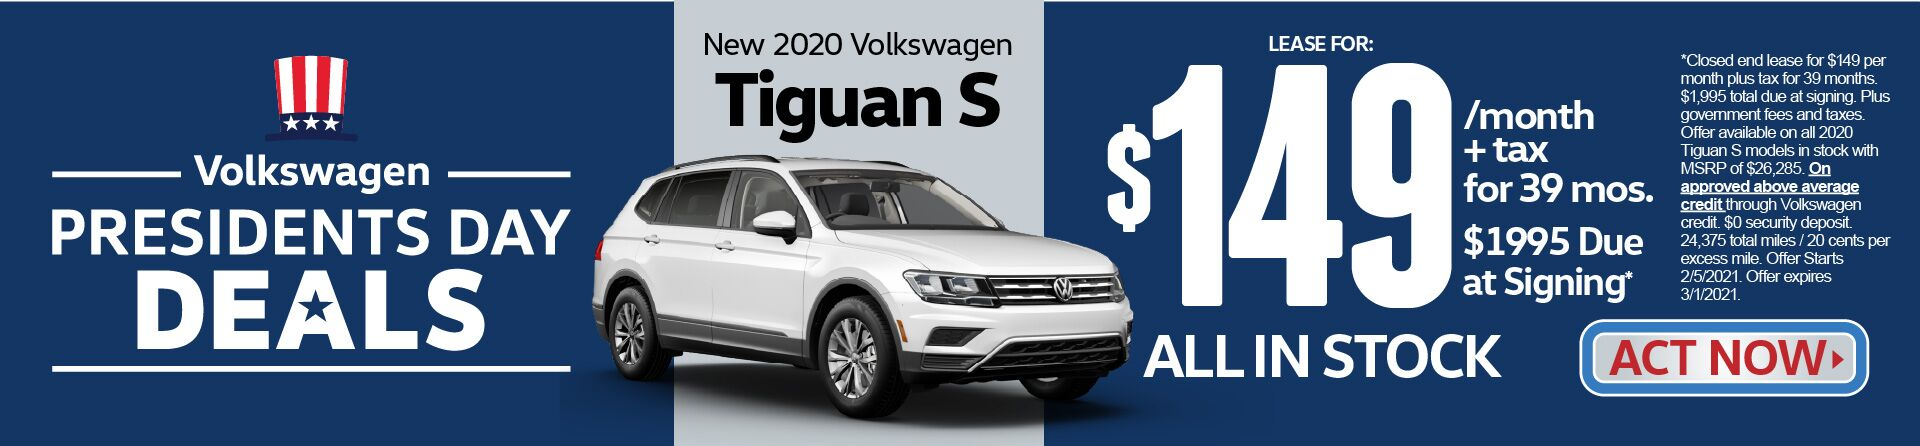 New 2020 VW Tiguan S Lease for $149 a month for 39 months | Act Now